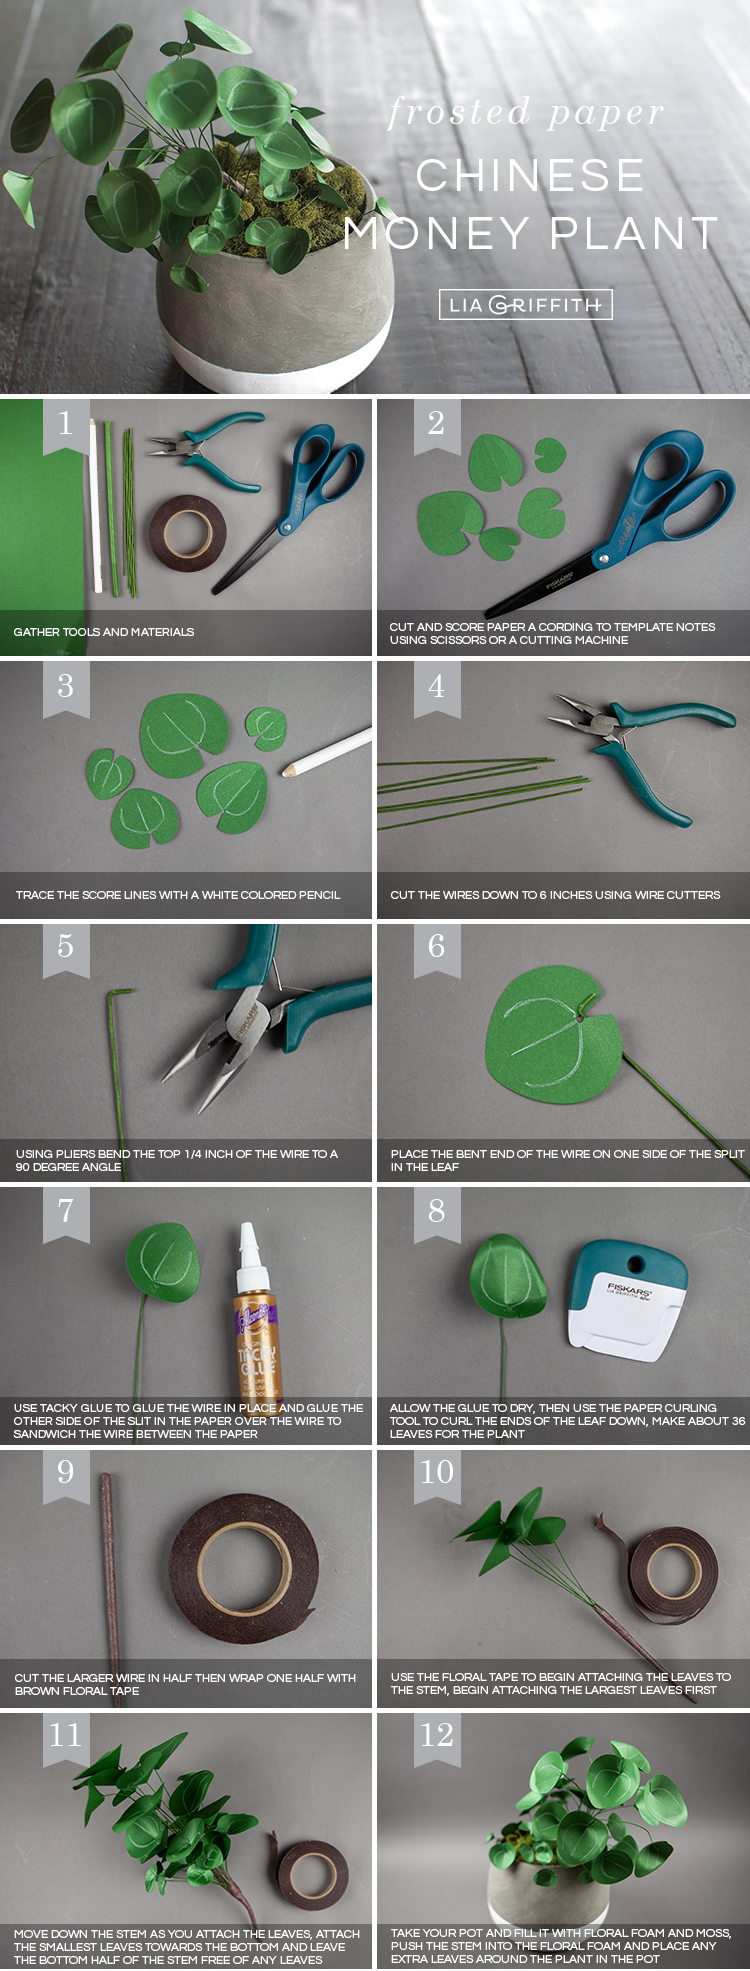 Photo tutorial for frosted paper Chinese money plant by Lia Griffith